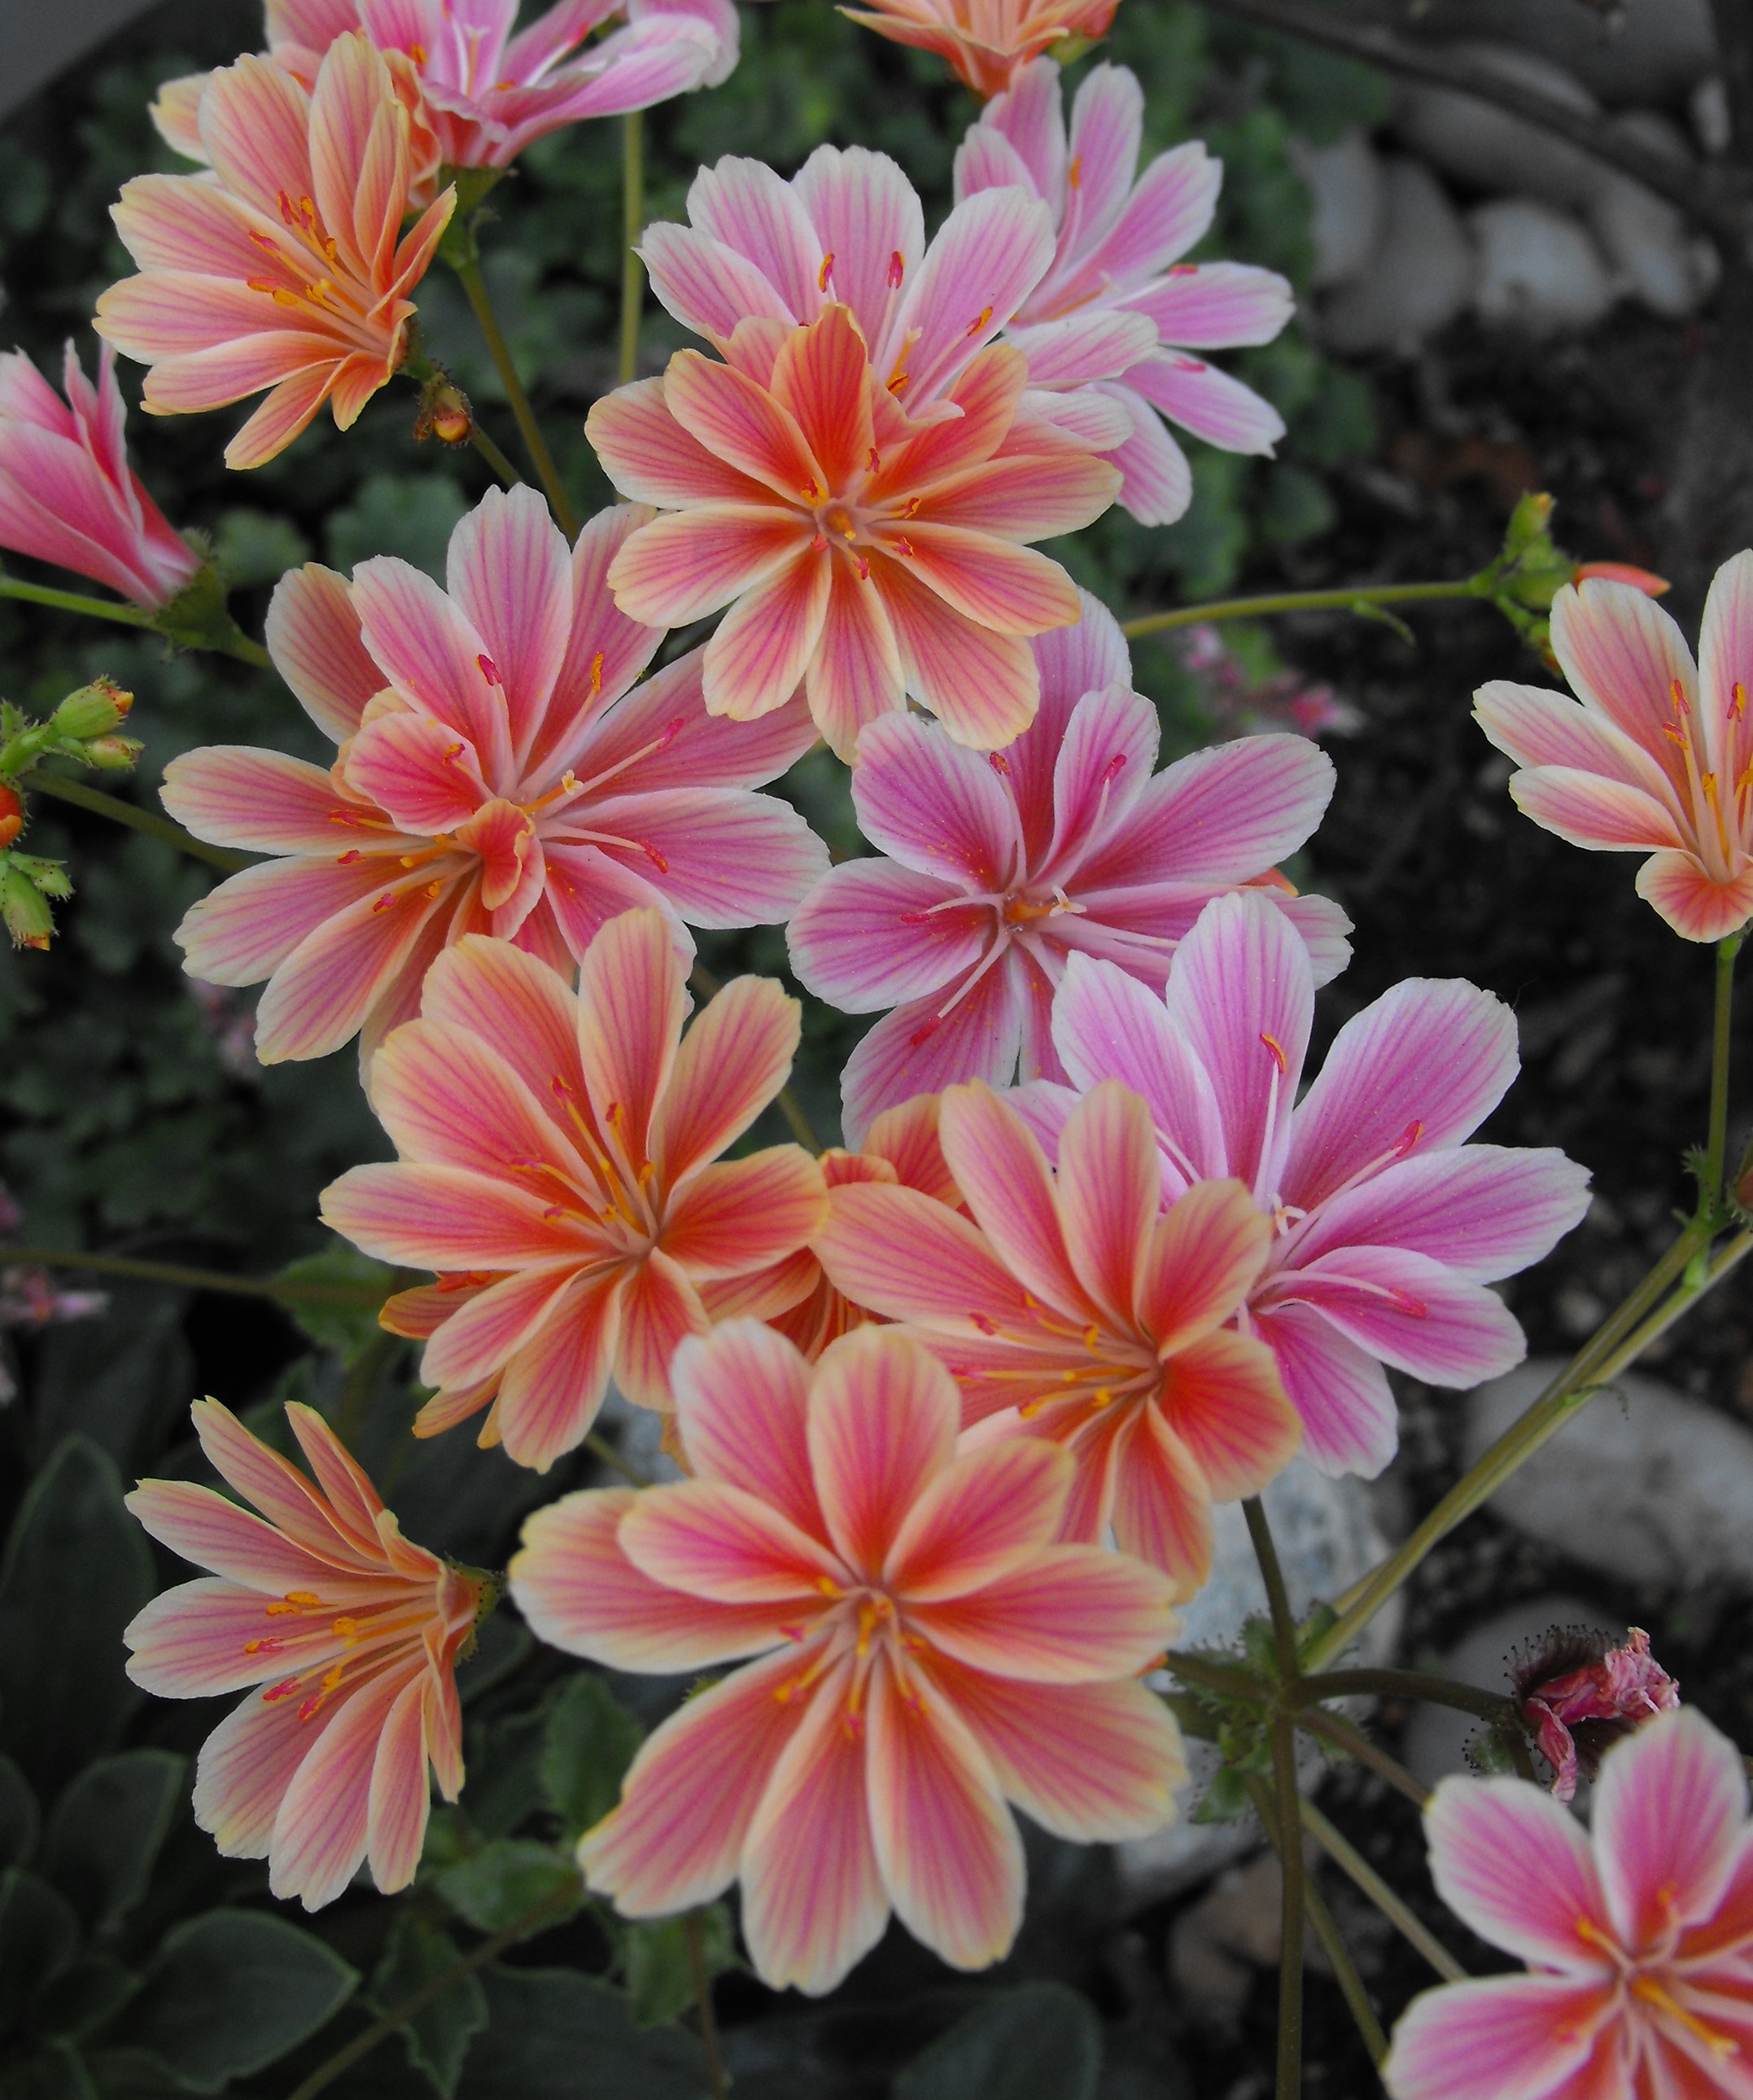 Image taken by user Stickpen on Wikipedia, creative commons licence.  Location: Rancho Santa Ana Botanic Garden, Clairmont, CA, USA